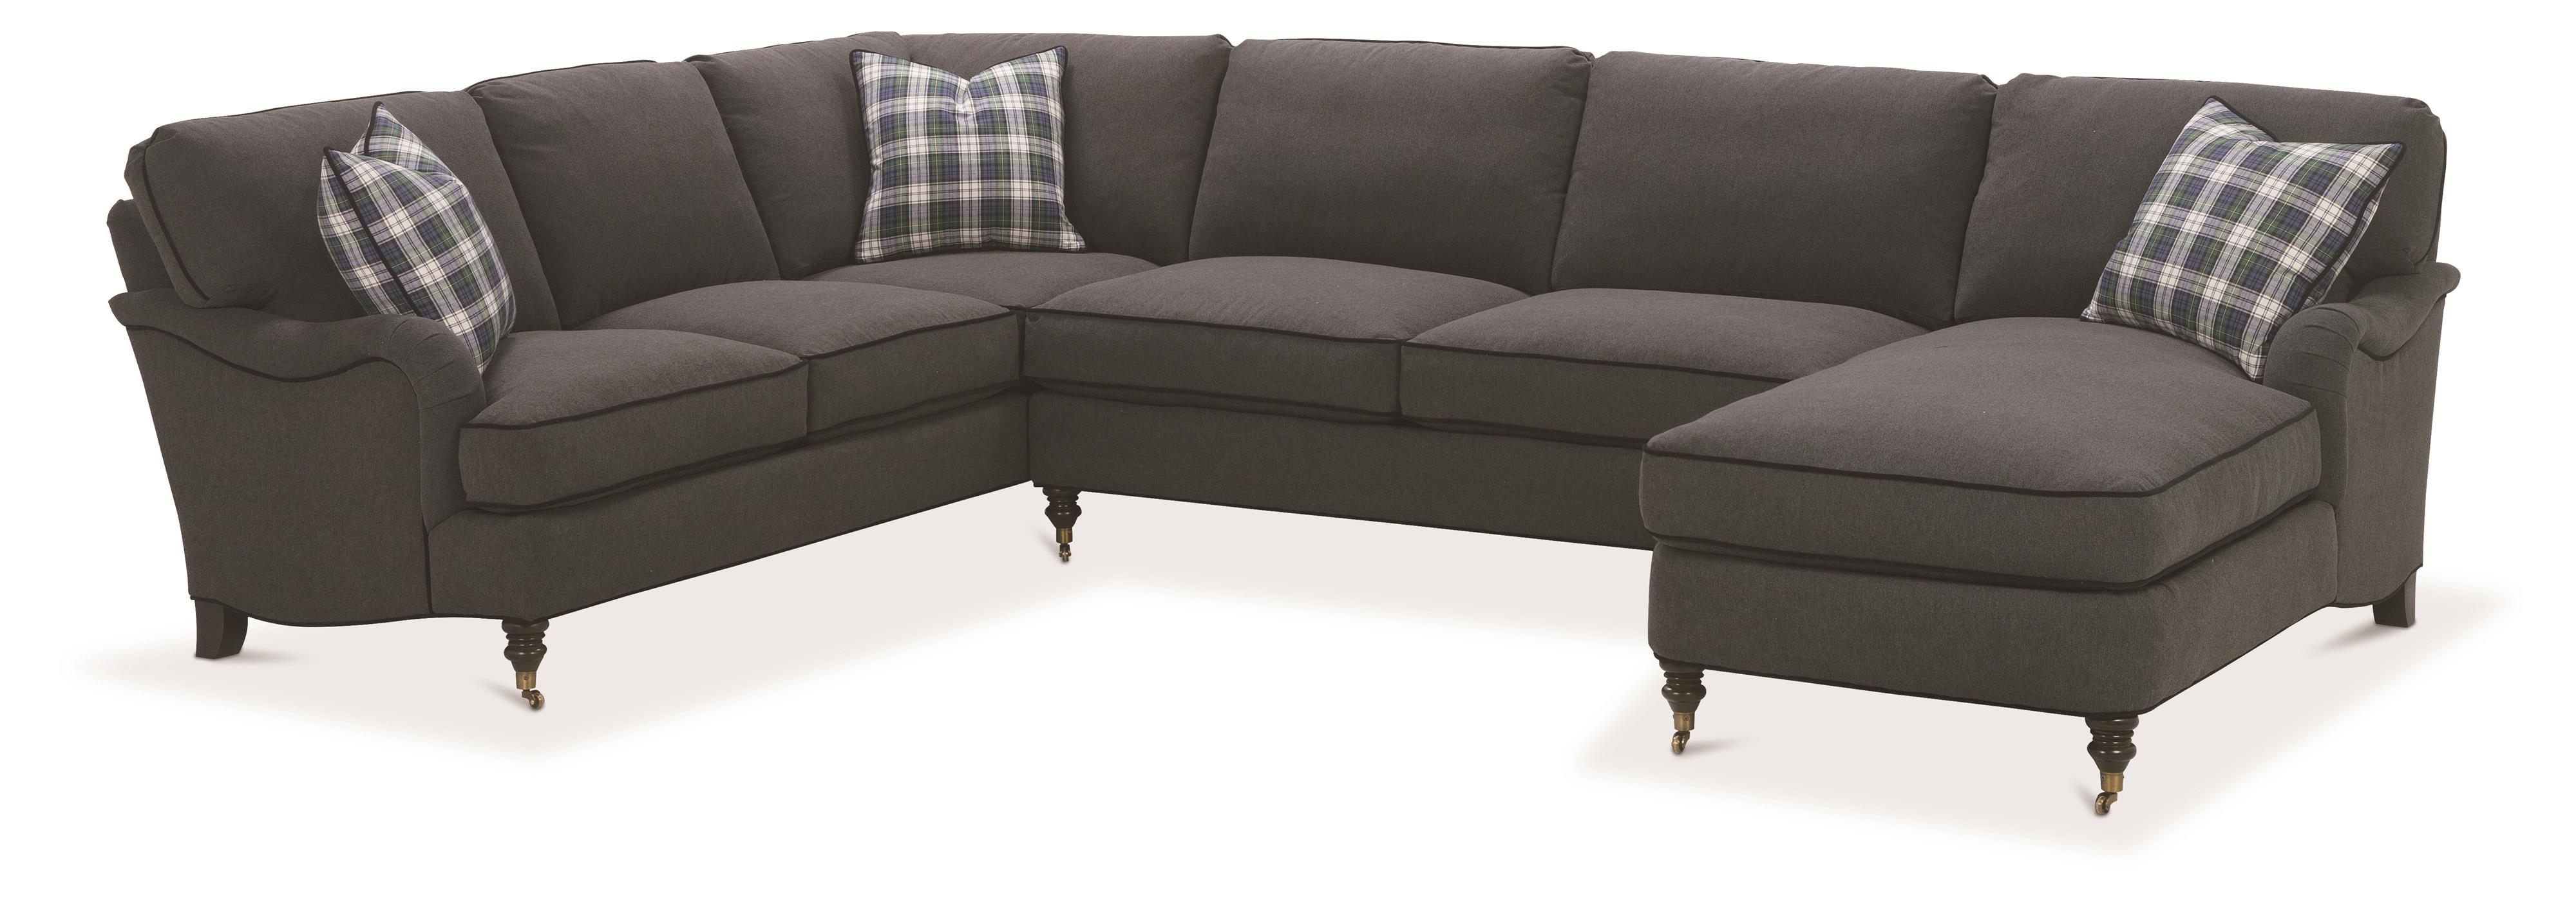 Brooke Sectional Sofa with Castered Turned by Robin Bruce at Steger's Furniture